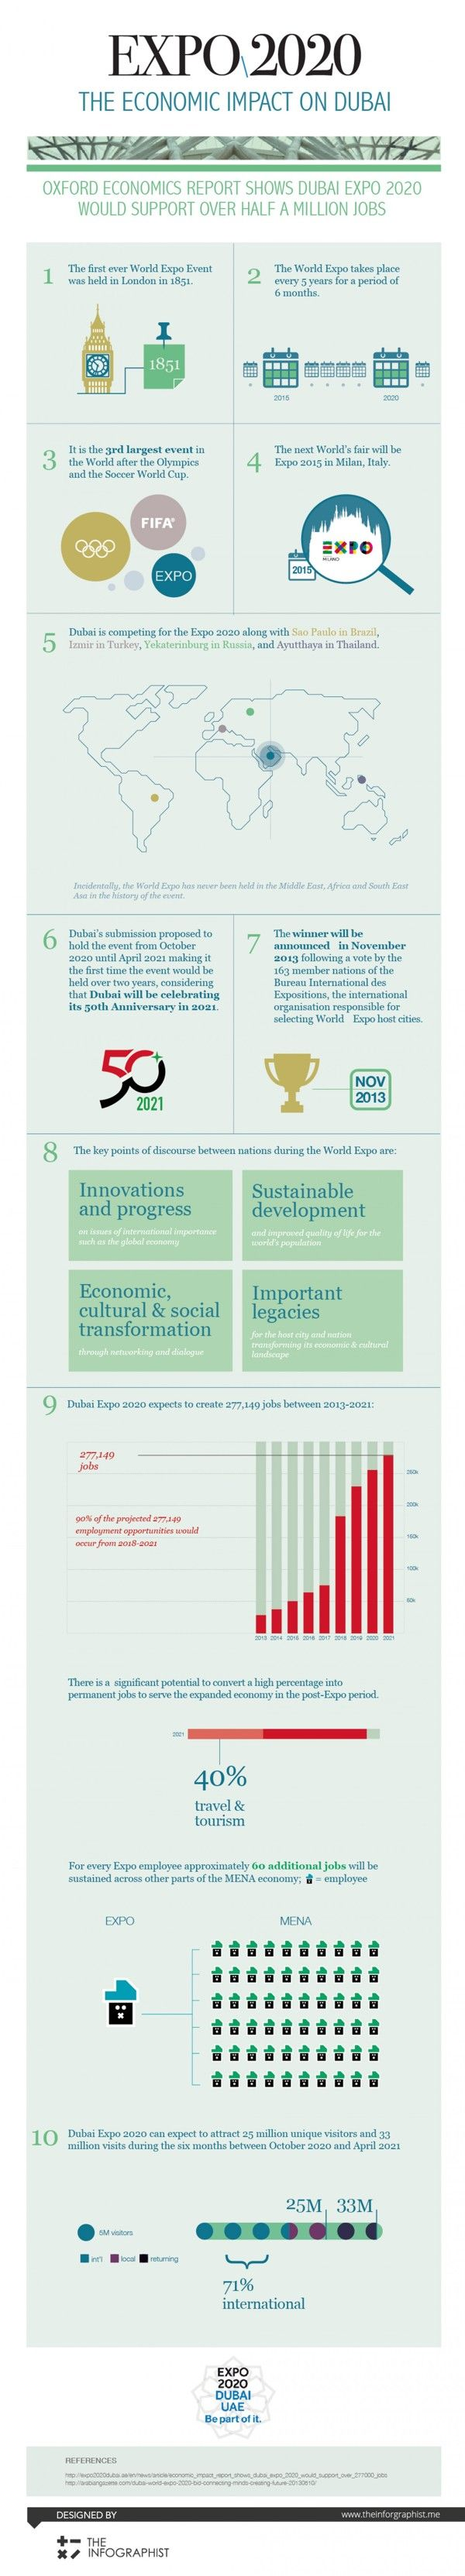 Dubai World Expo 2020: Infographic - Towards Connecting Minds as One Fraternity - www.arabiangazette.com